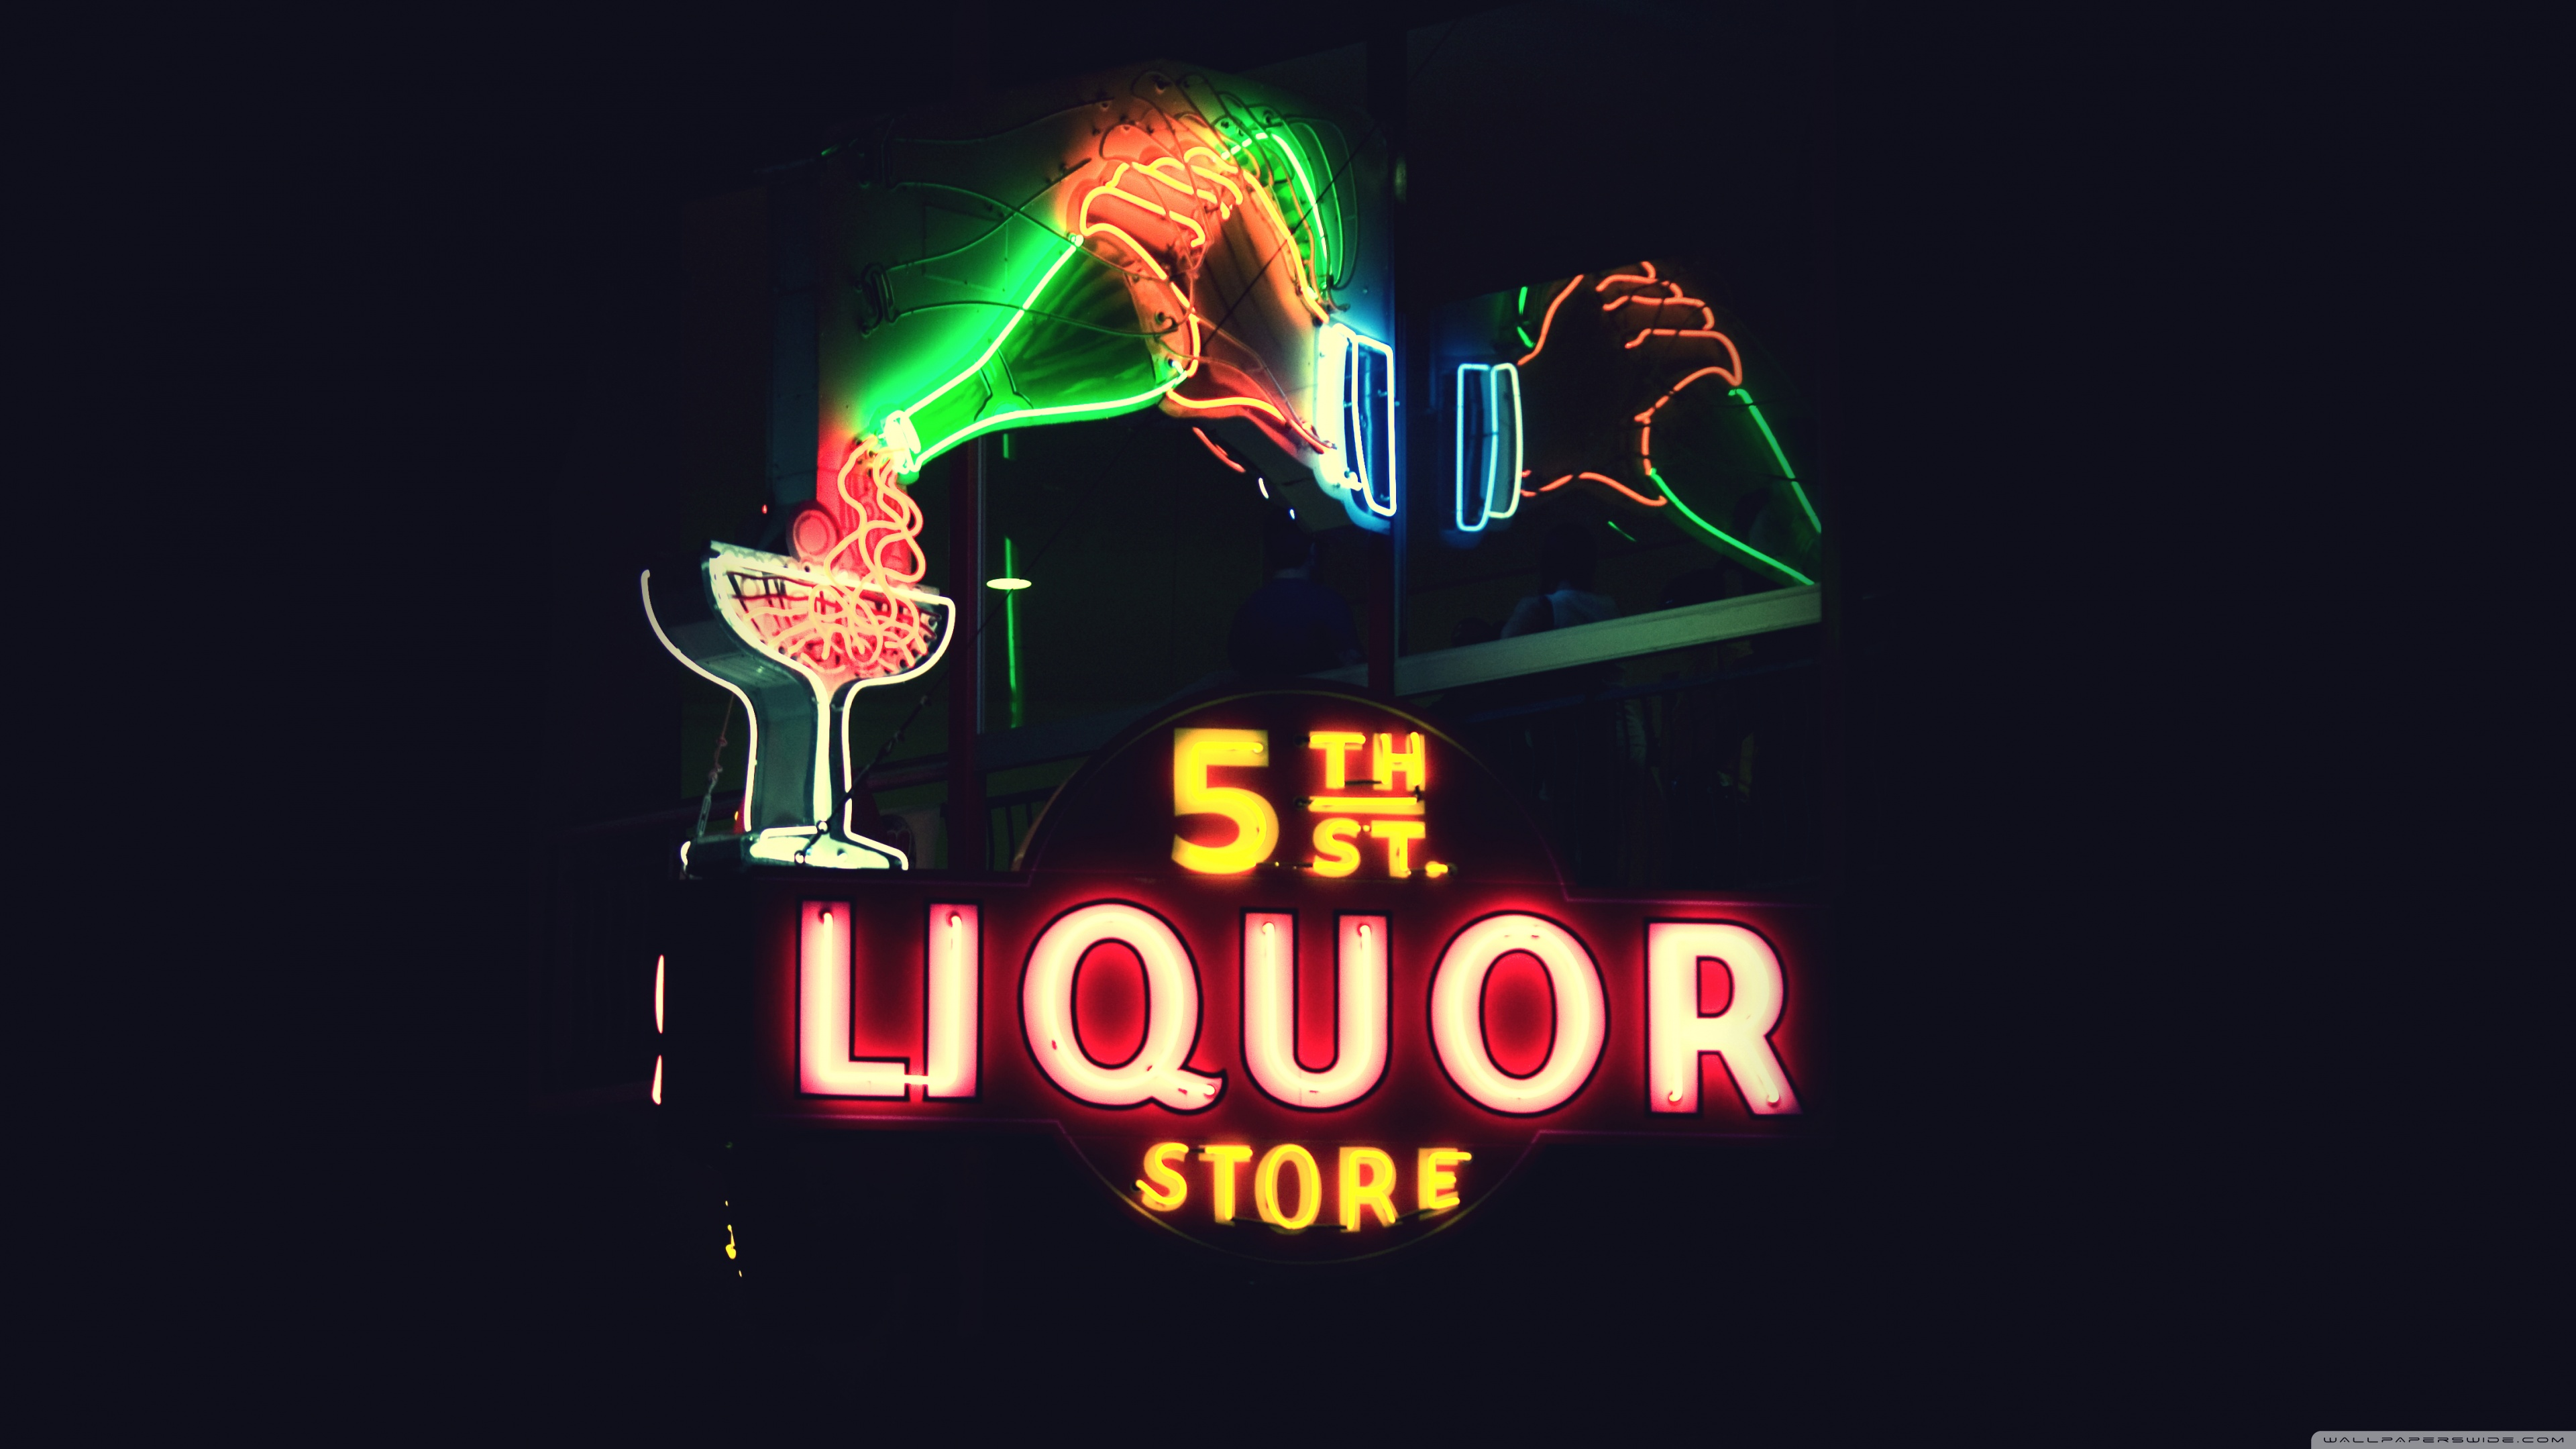 3840x2160 - Liquor Wallpapers 31